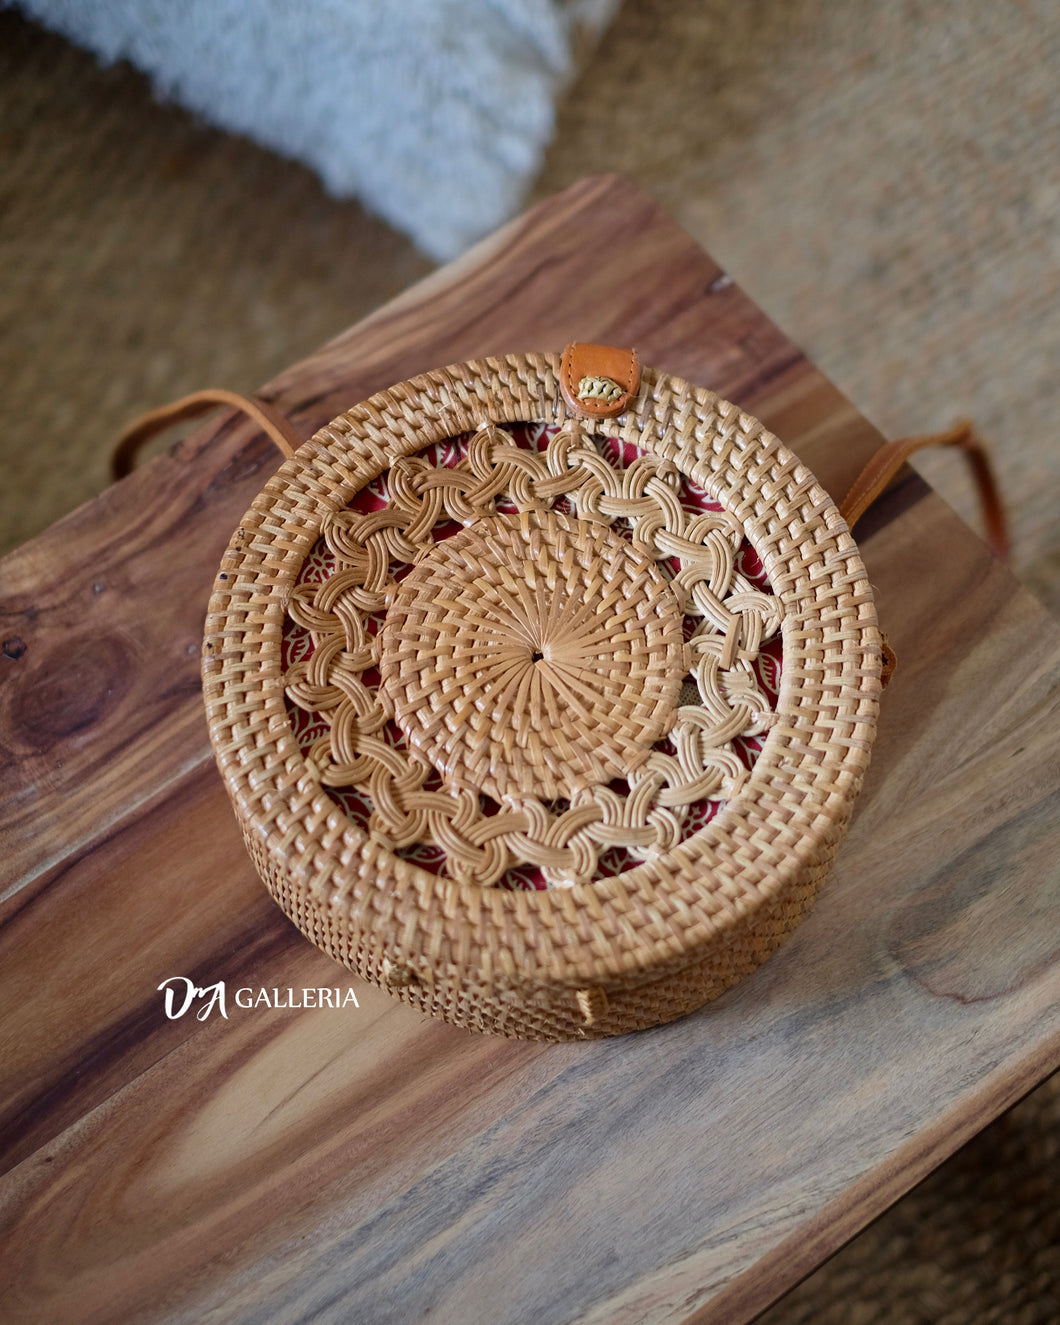 Braid Handwoven Round Rattan Bag Bali (HR00013)